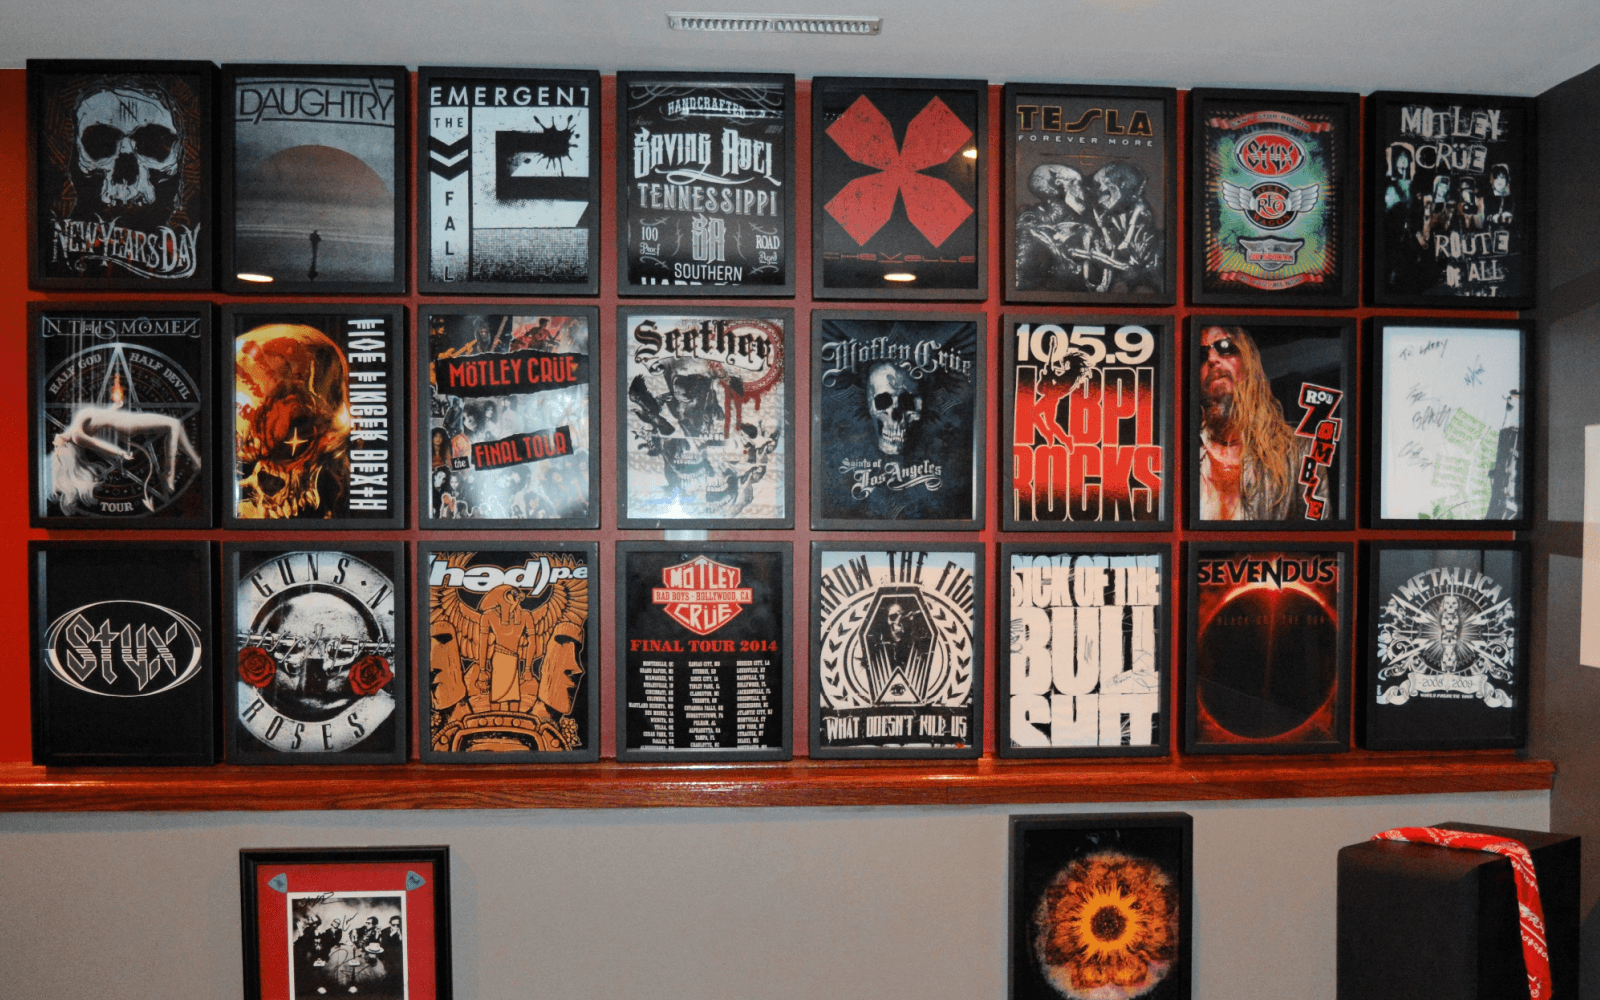 Large Shart T-Shirt Frame Display of Heavy Metal tee shirts in music studio